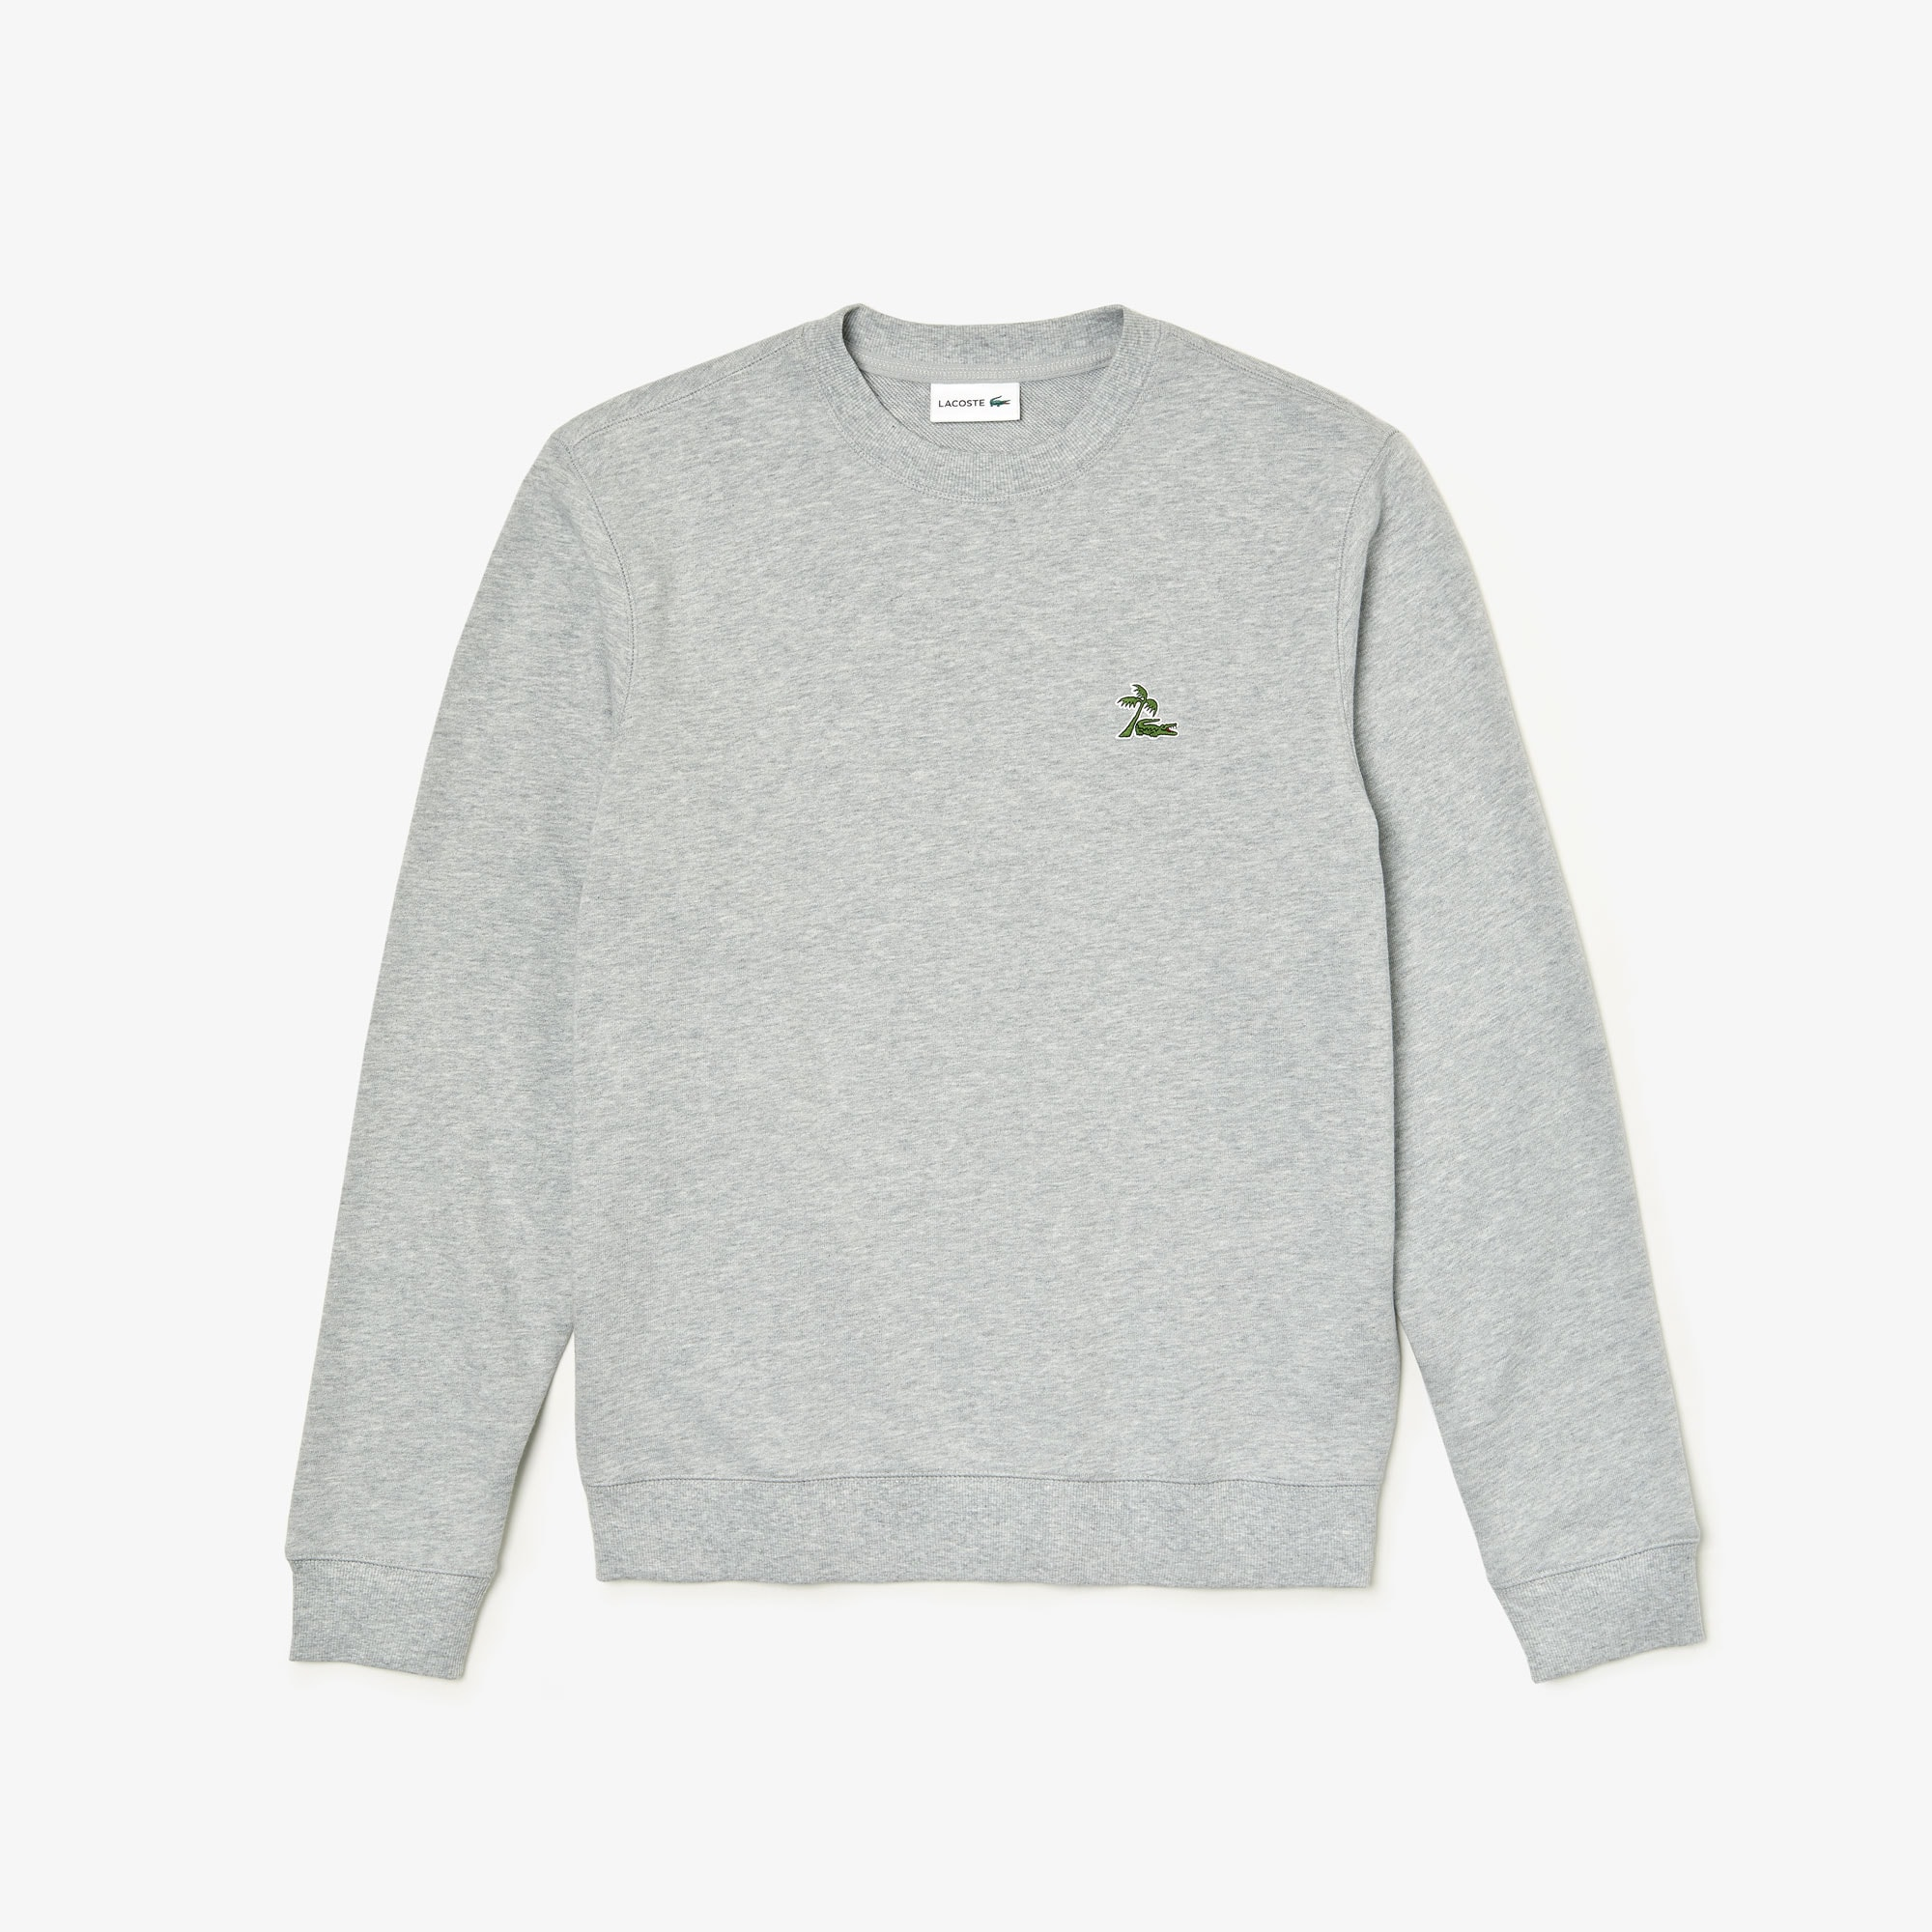 Men's Crew Neck Fleece Sweatshirt